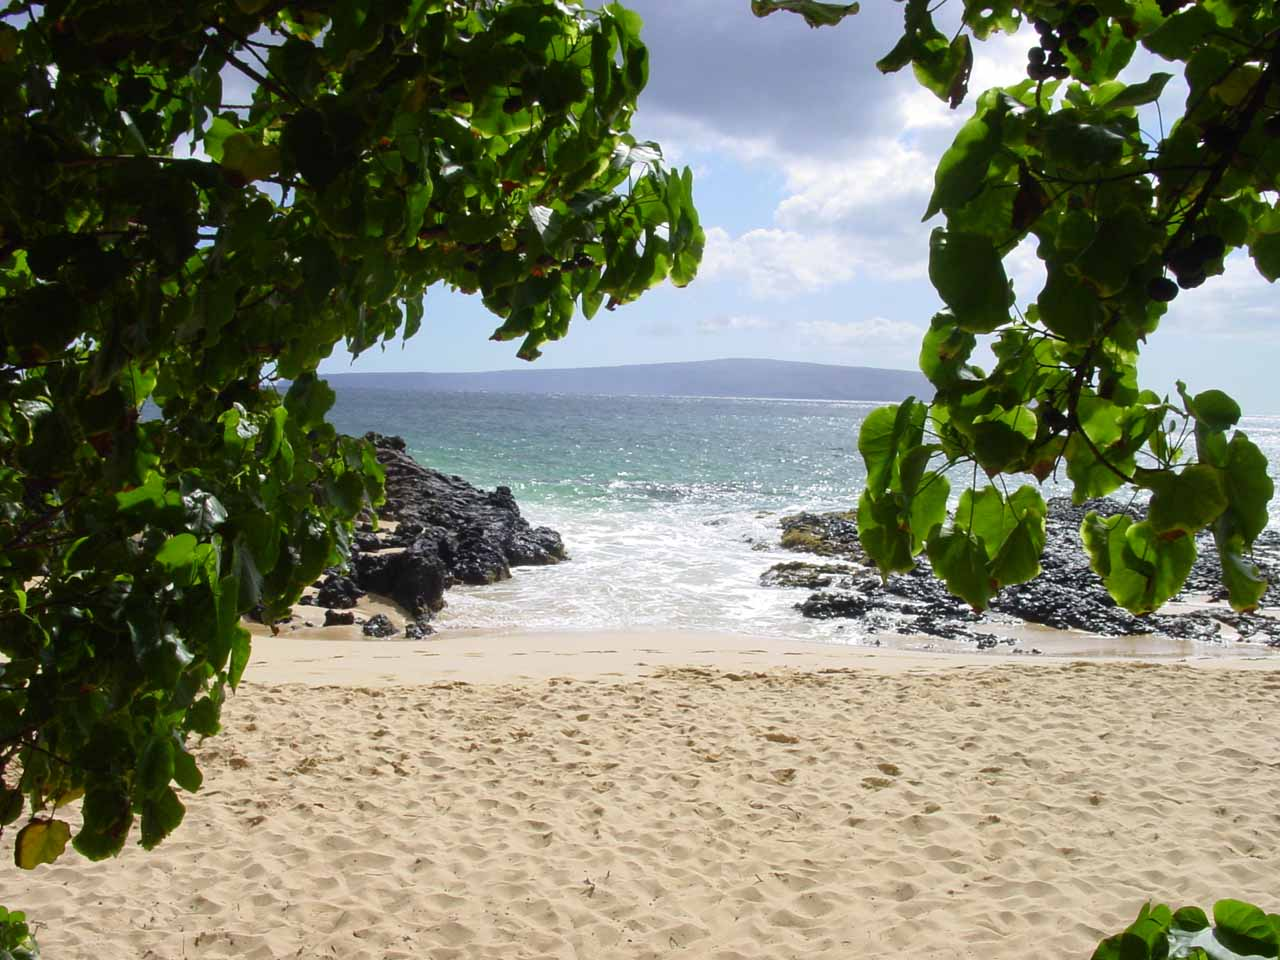 On the opposite side of East Maui were some fairly hidden and secluded beaches of South Maui like this one pictured here. The island in the background was Kaho'olawe